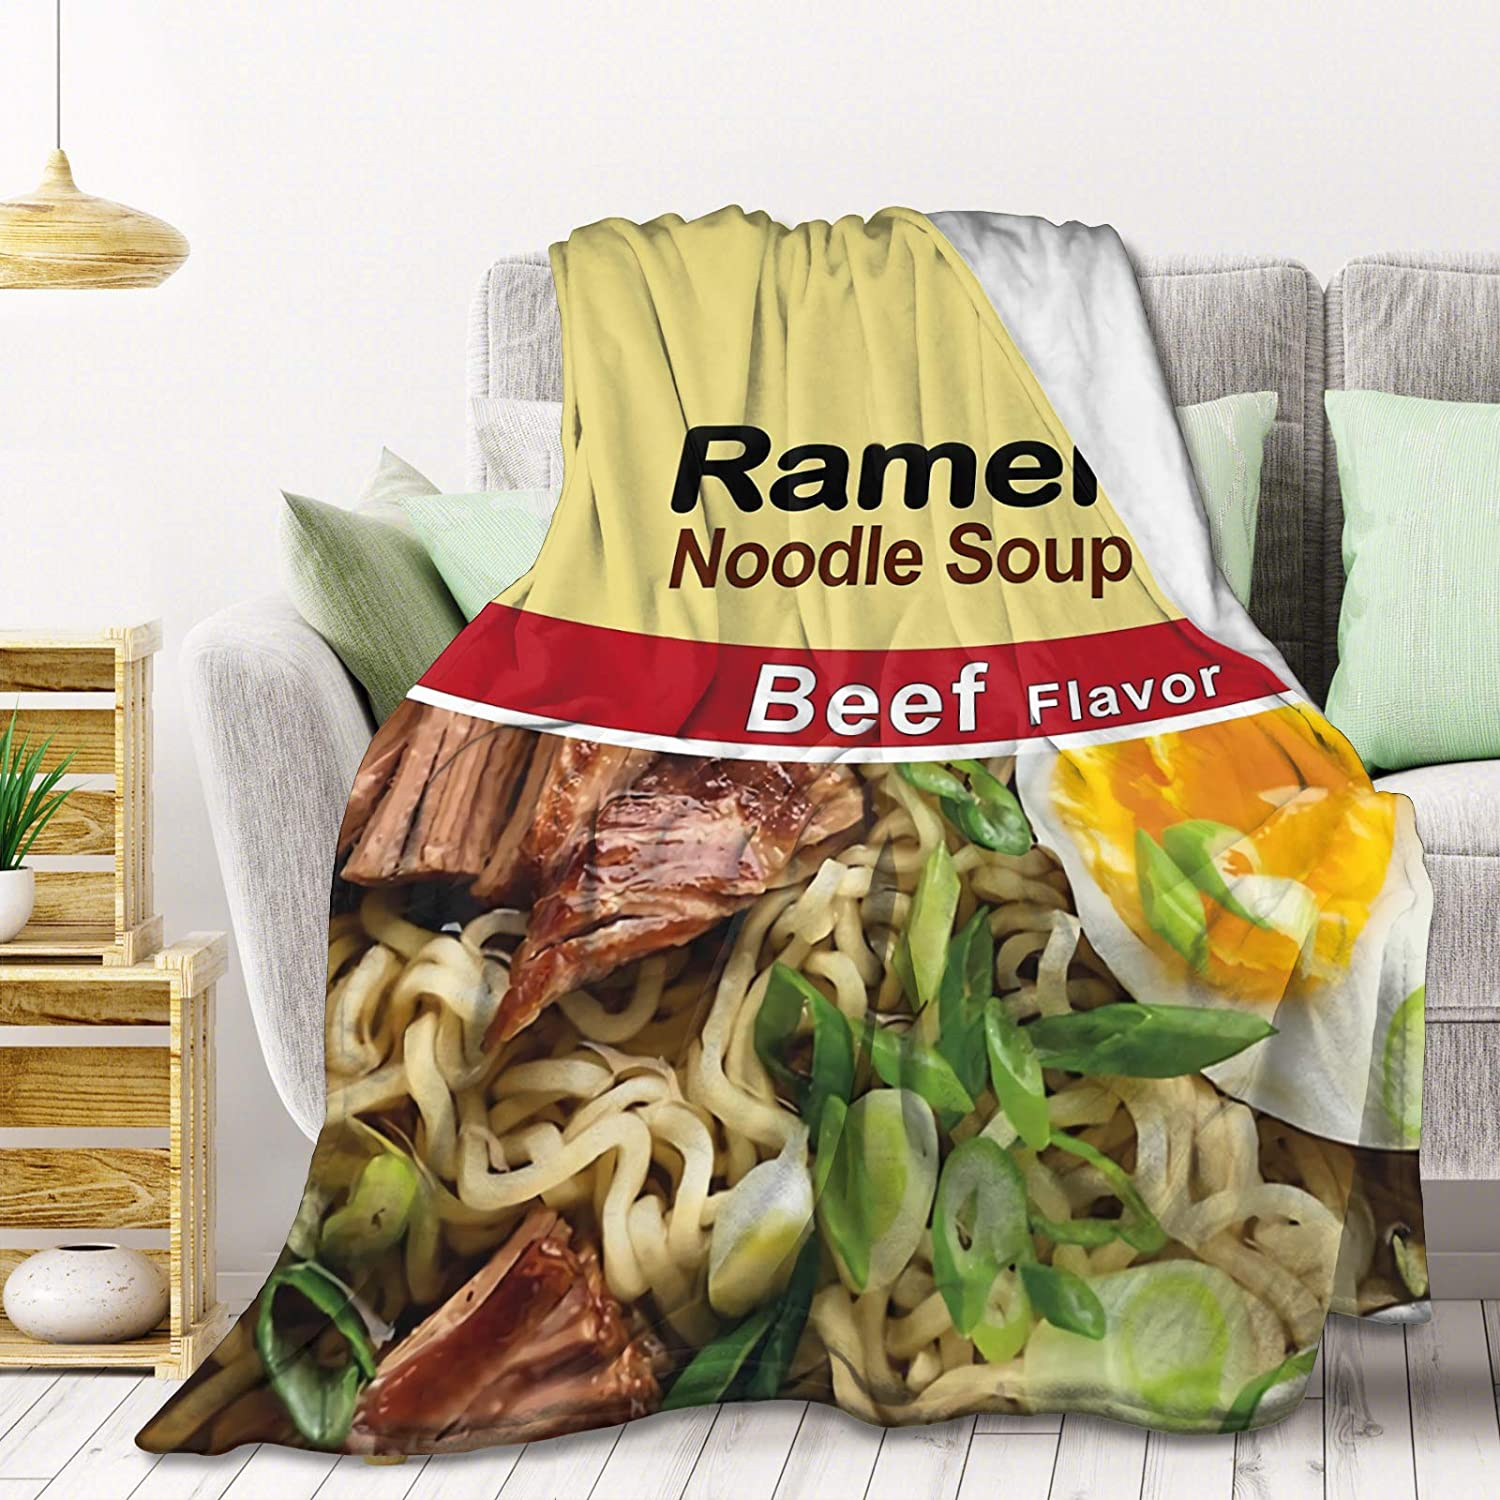 AMITAYUS Ramen Noodle Soup - Beef Flavor Fleece Throw Blanket Lightweight Super Soft Flannel Bed Blanket Perfect Home Decor for Couch Chair Sofa Living Room 50